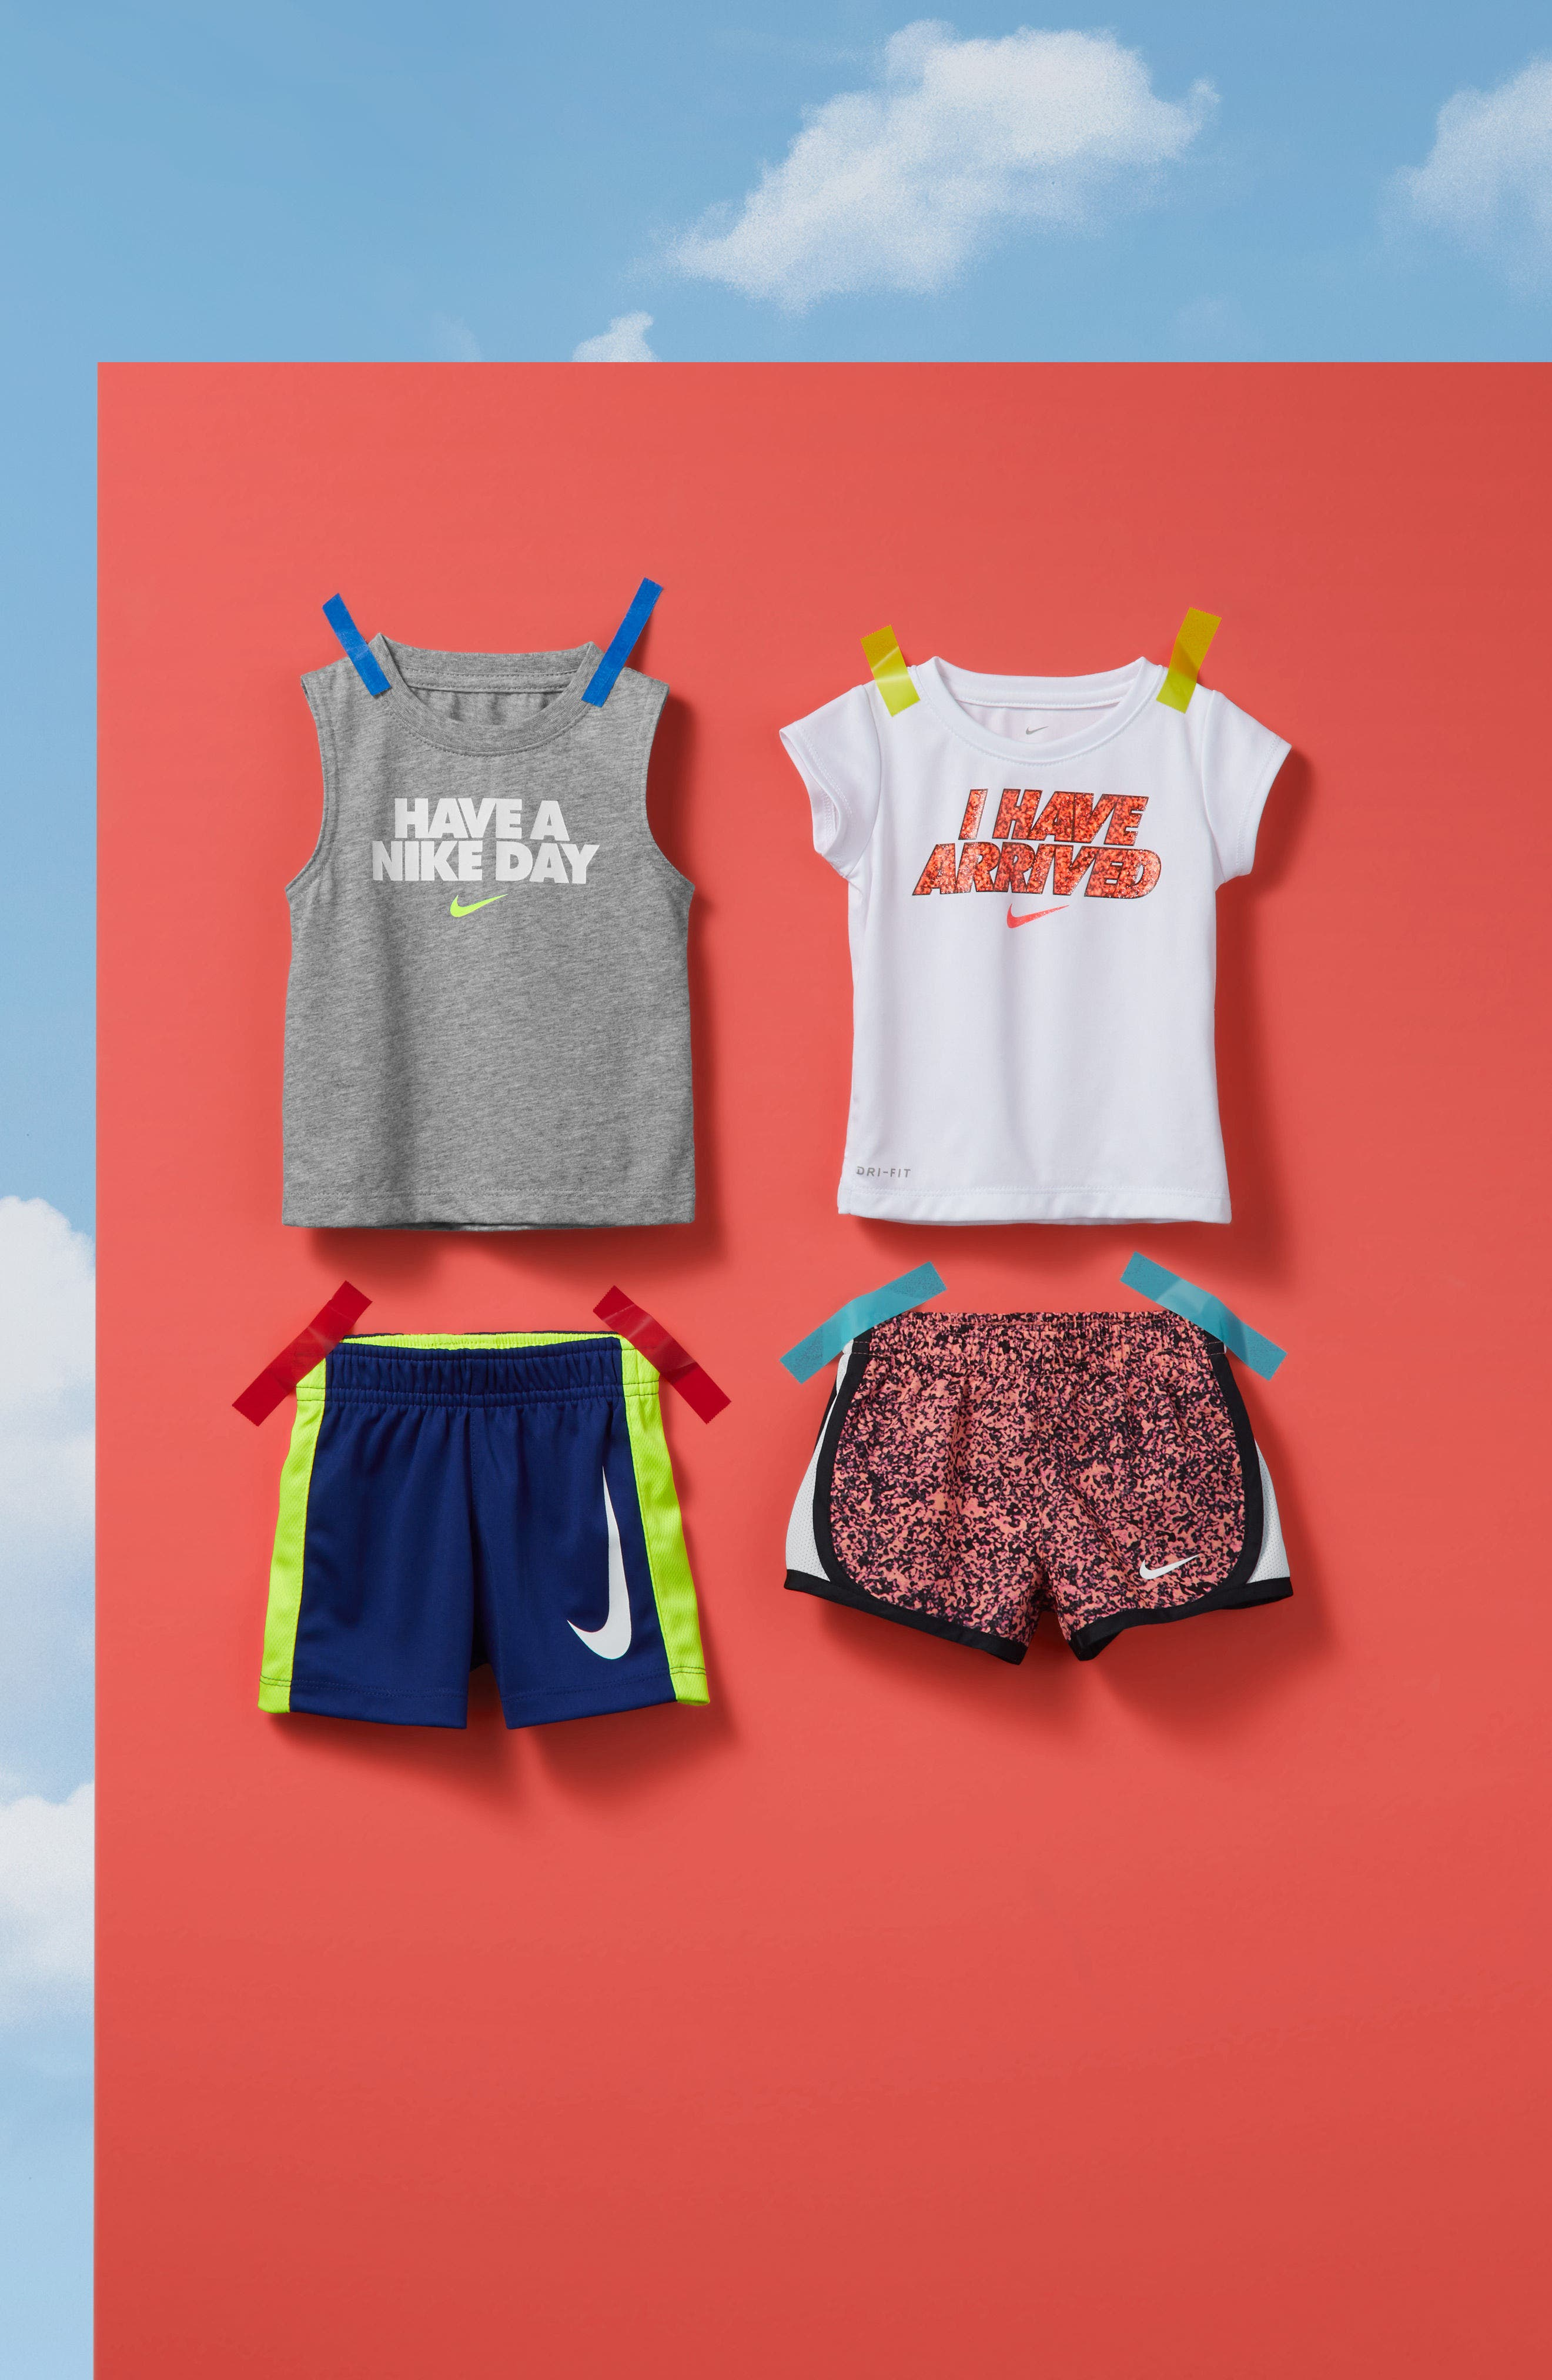 Have a Nike Day Tank Top & Shorts Set,                             Alternate thumbnail 3, color,                             433